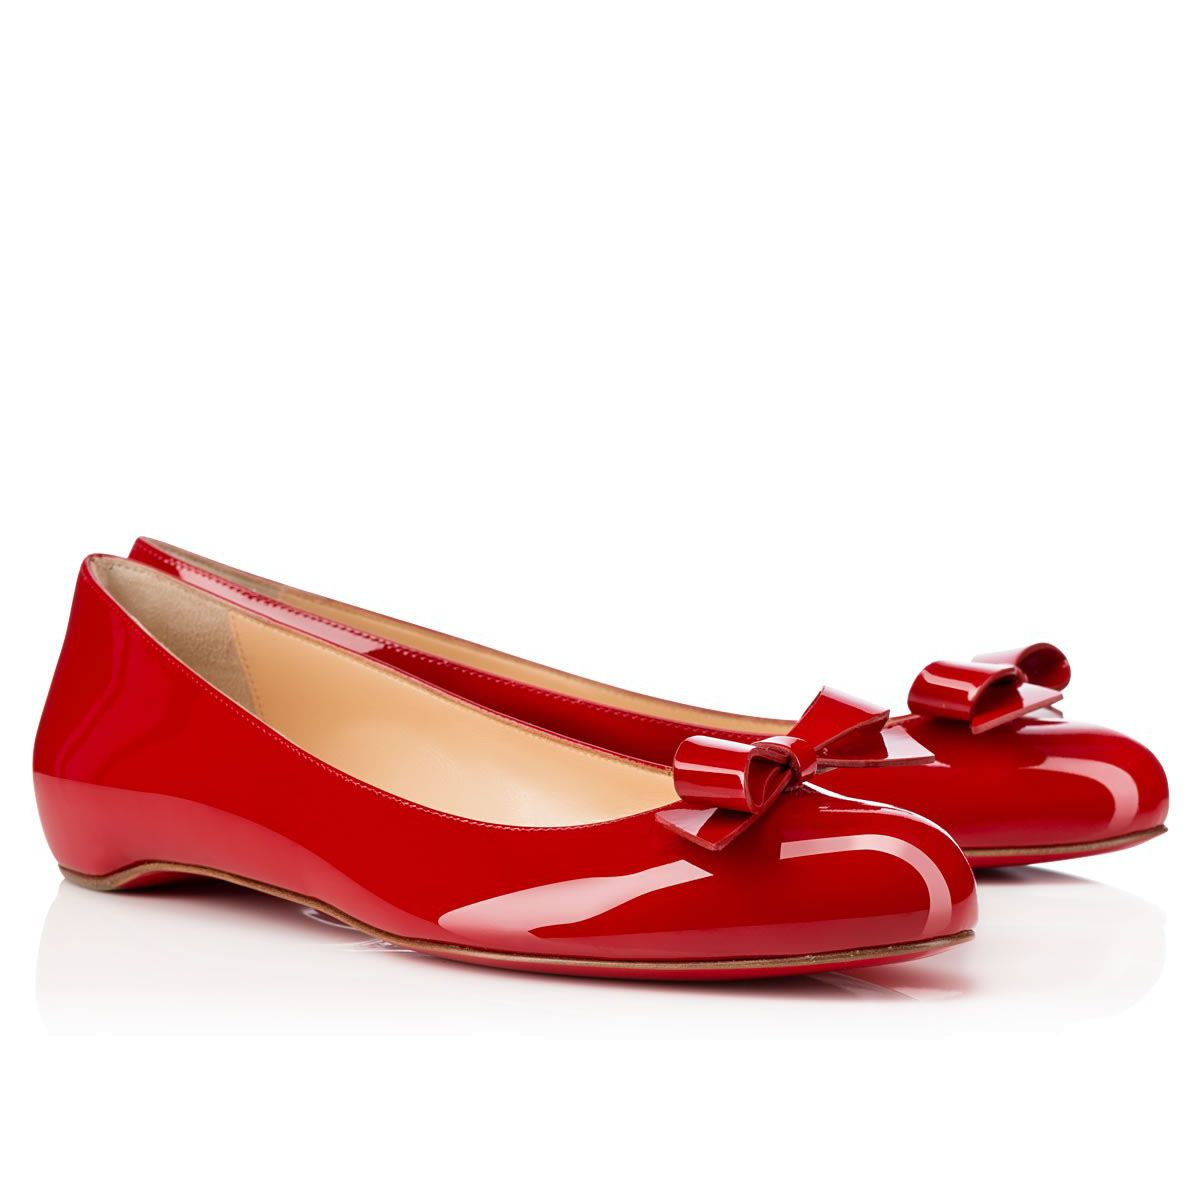 46f558c8306b Christian Louboutin Simplenodo Flat Patent Leather Ballerinas Shoes ...